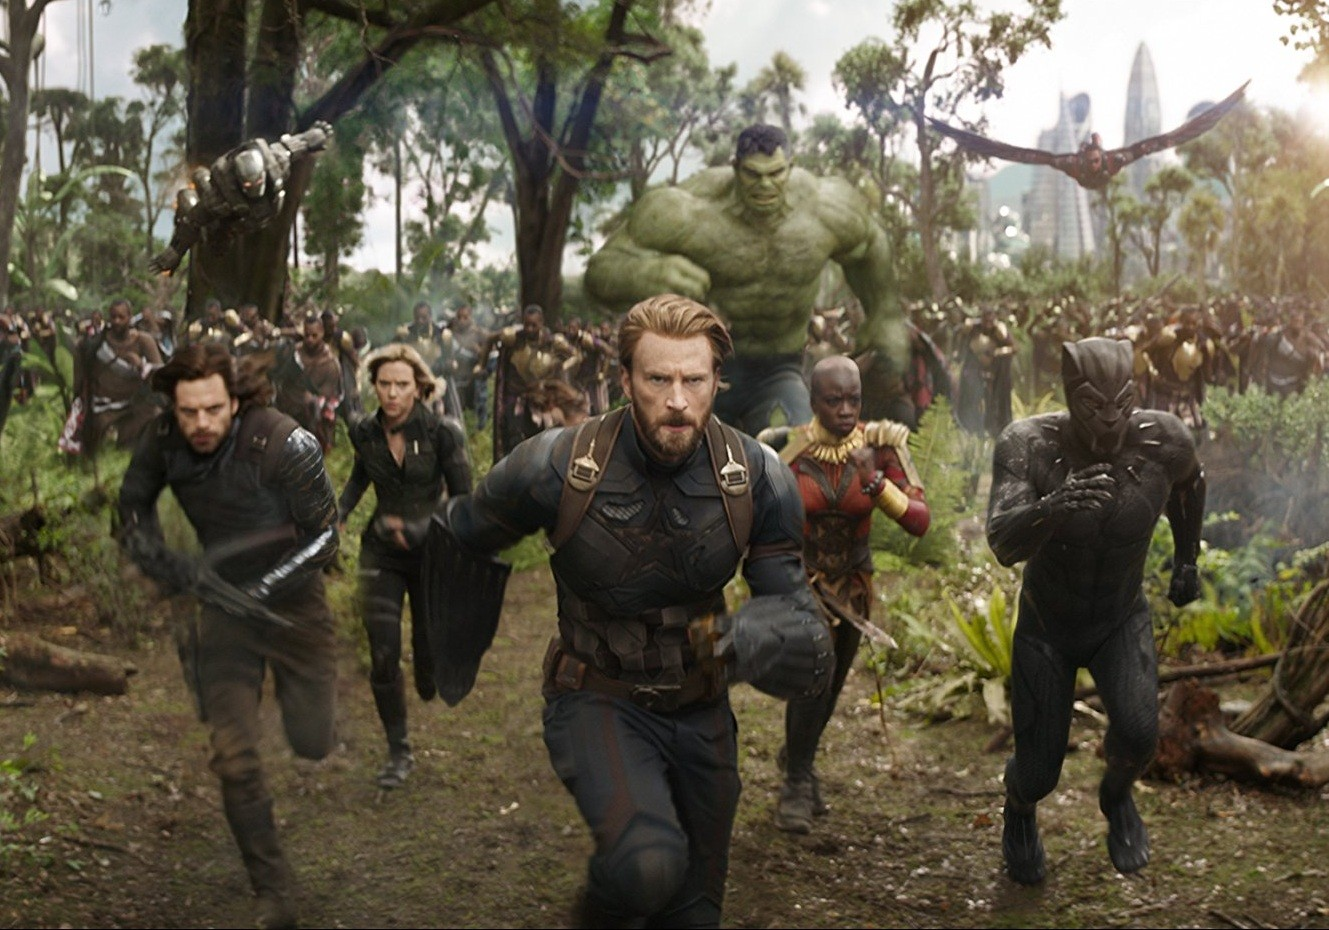 Censor says no scene cut from 'Avengers: Infinity War'